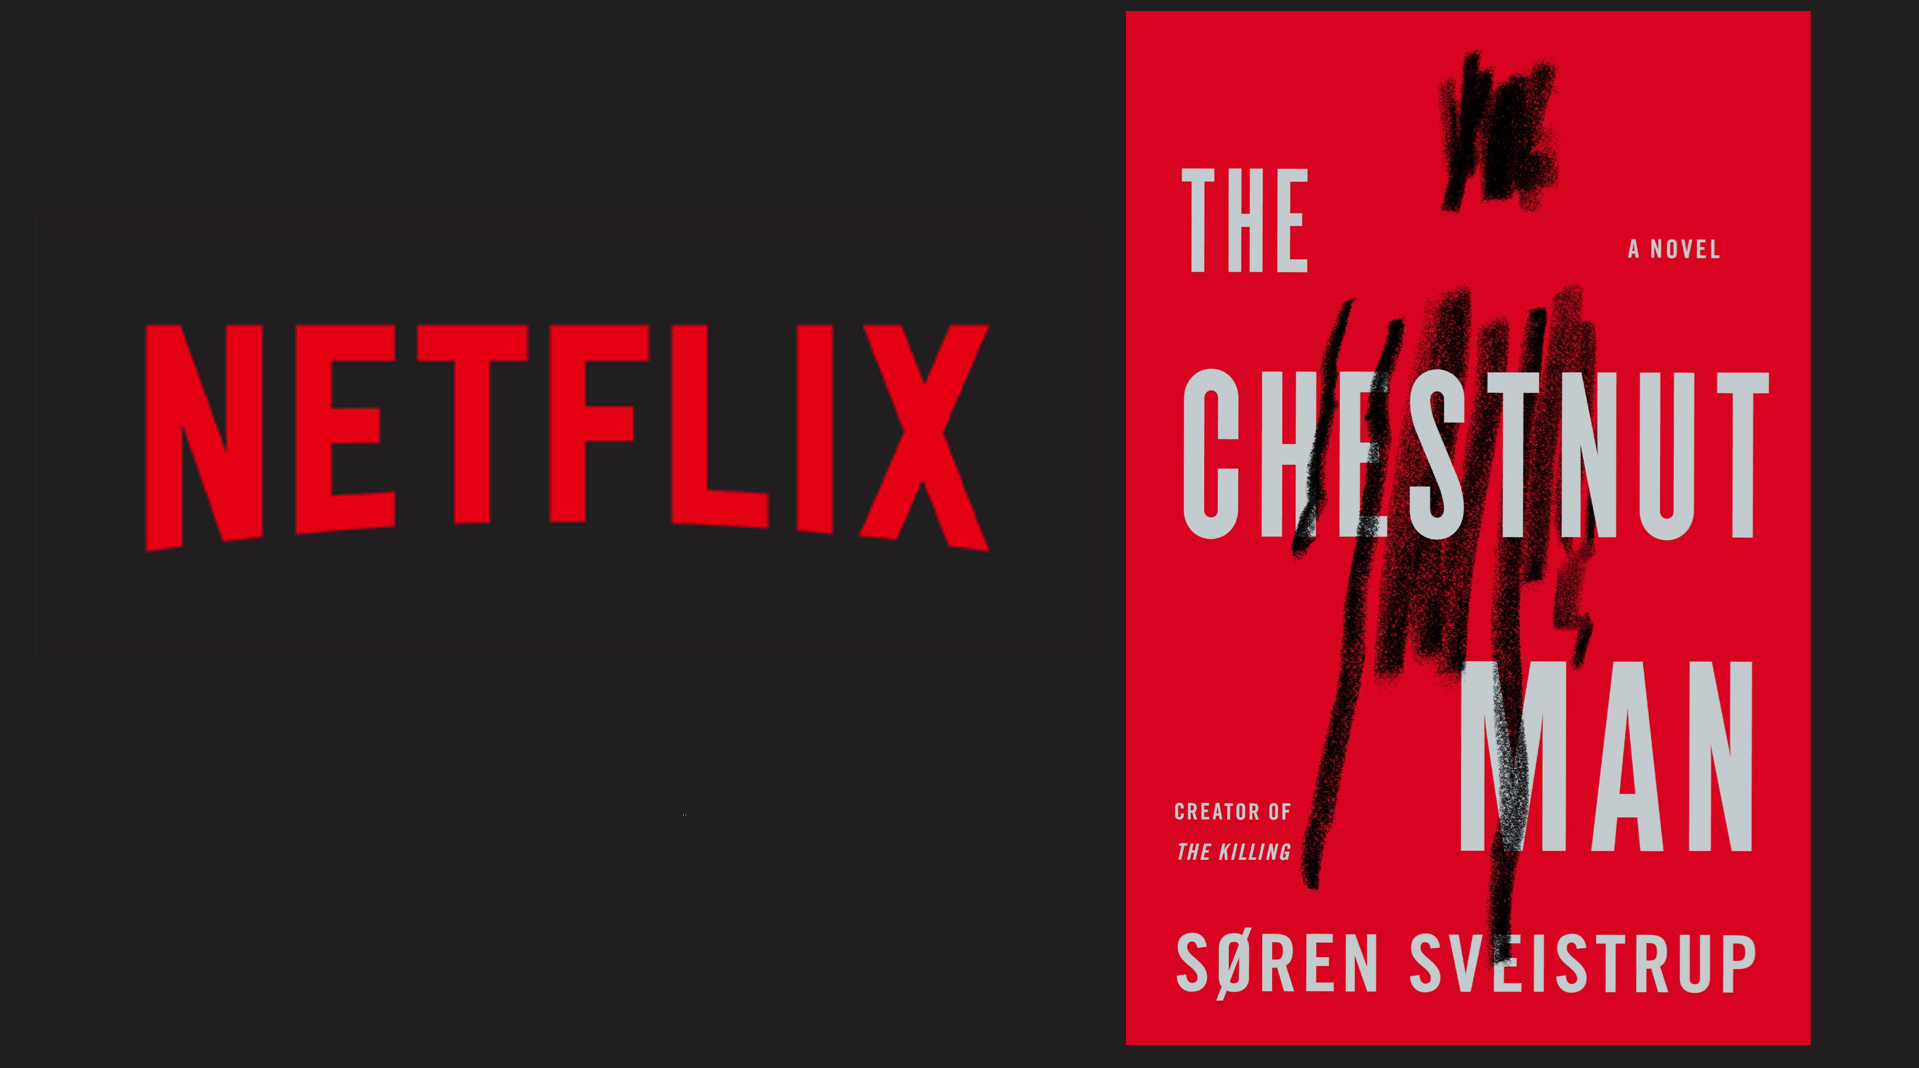 Image of Netflix logo and book cover of The Chestnut Man, by Soren Sveistrup